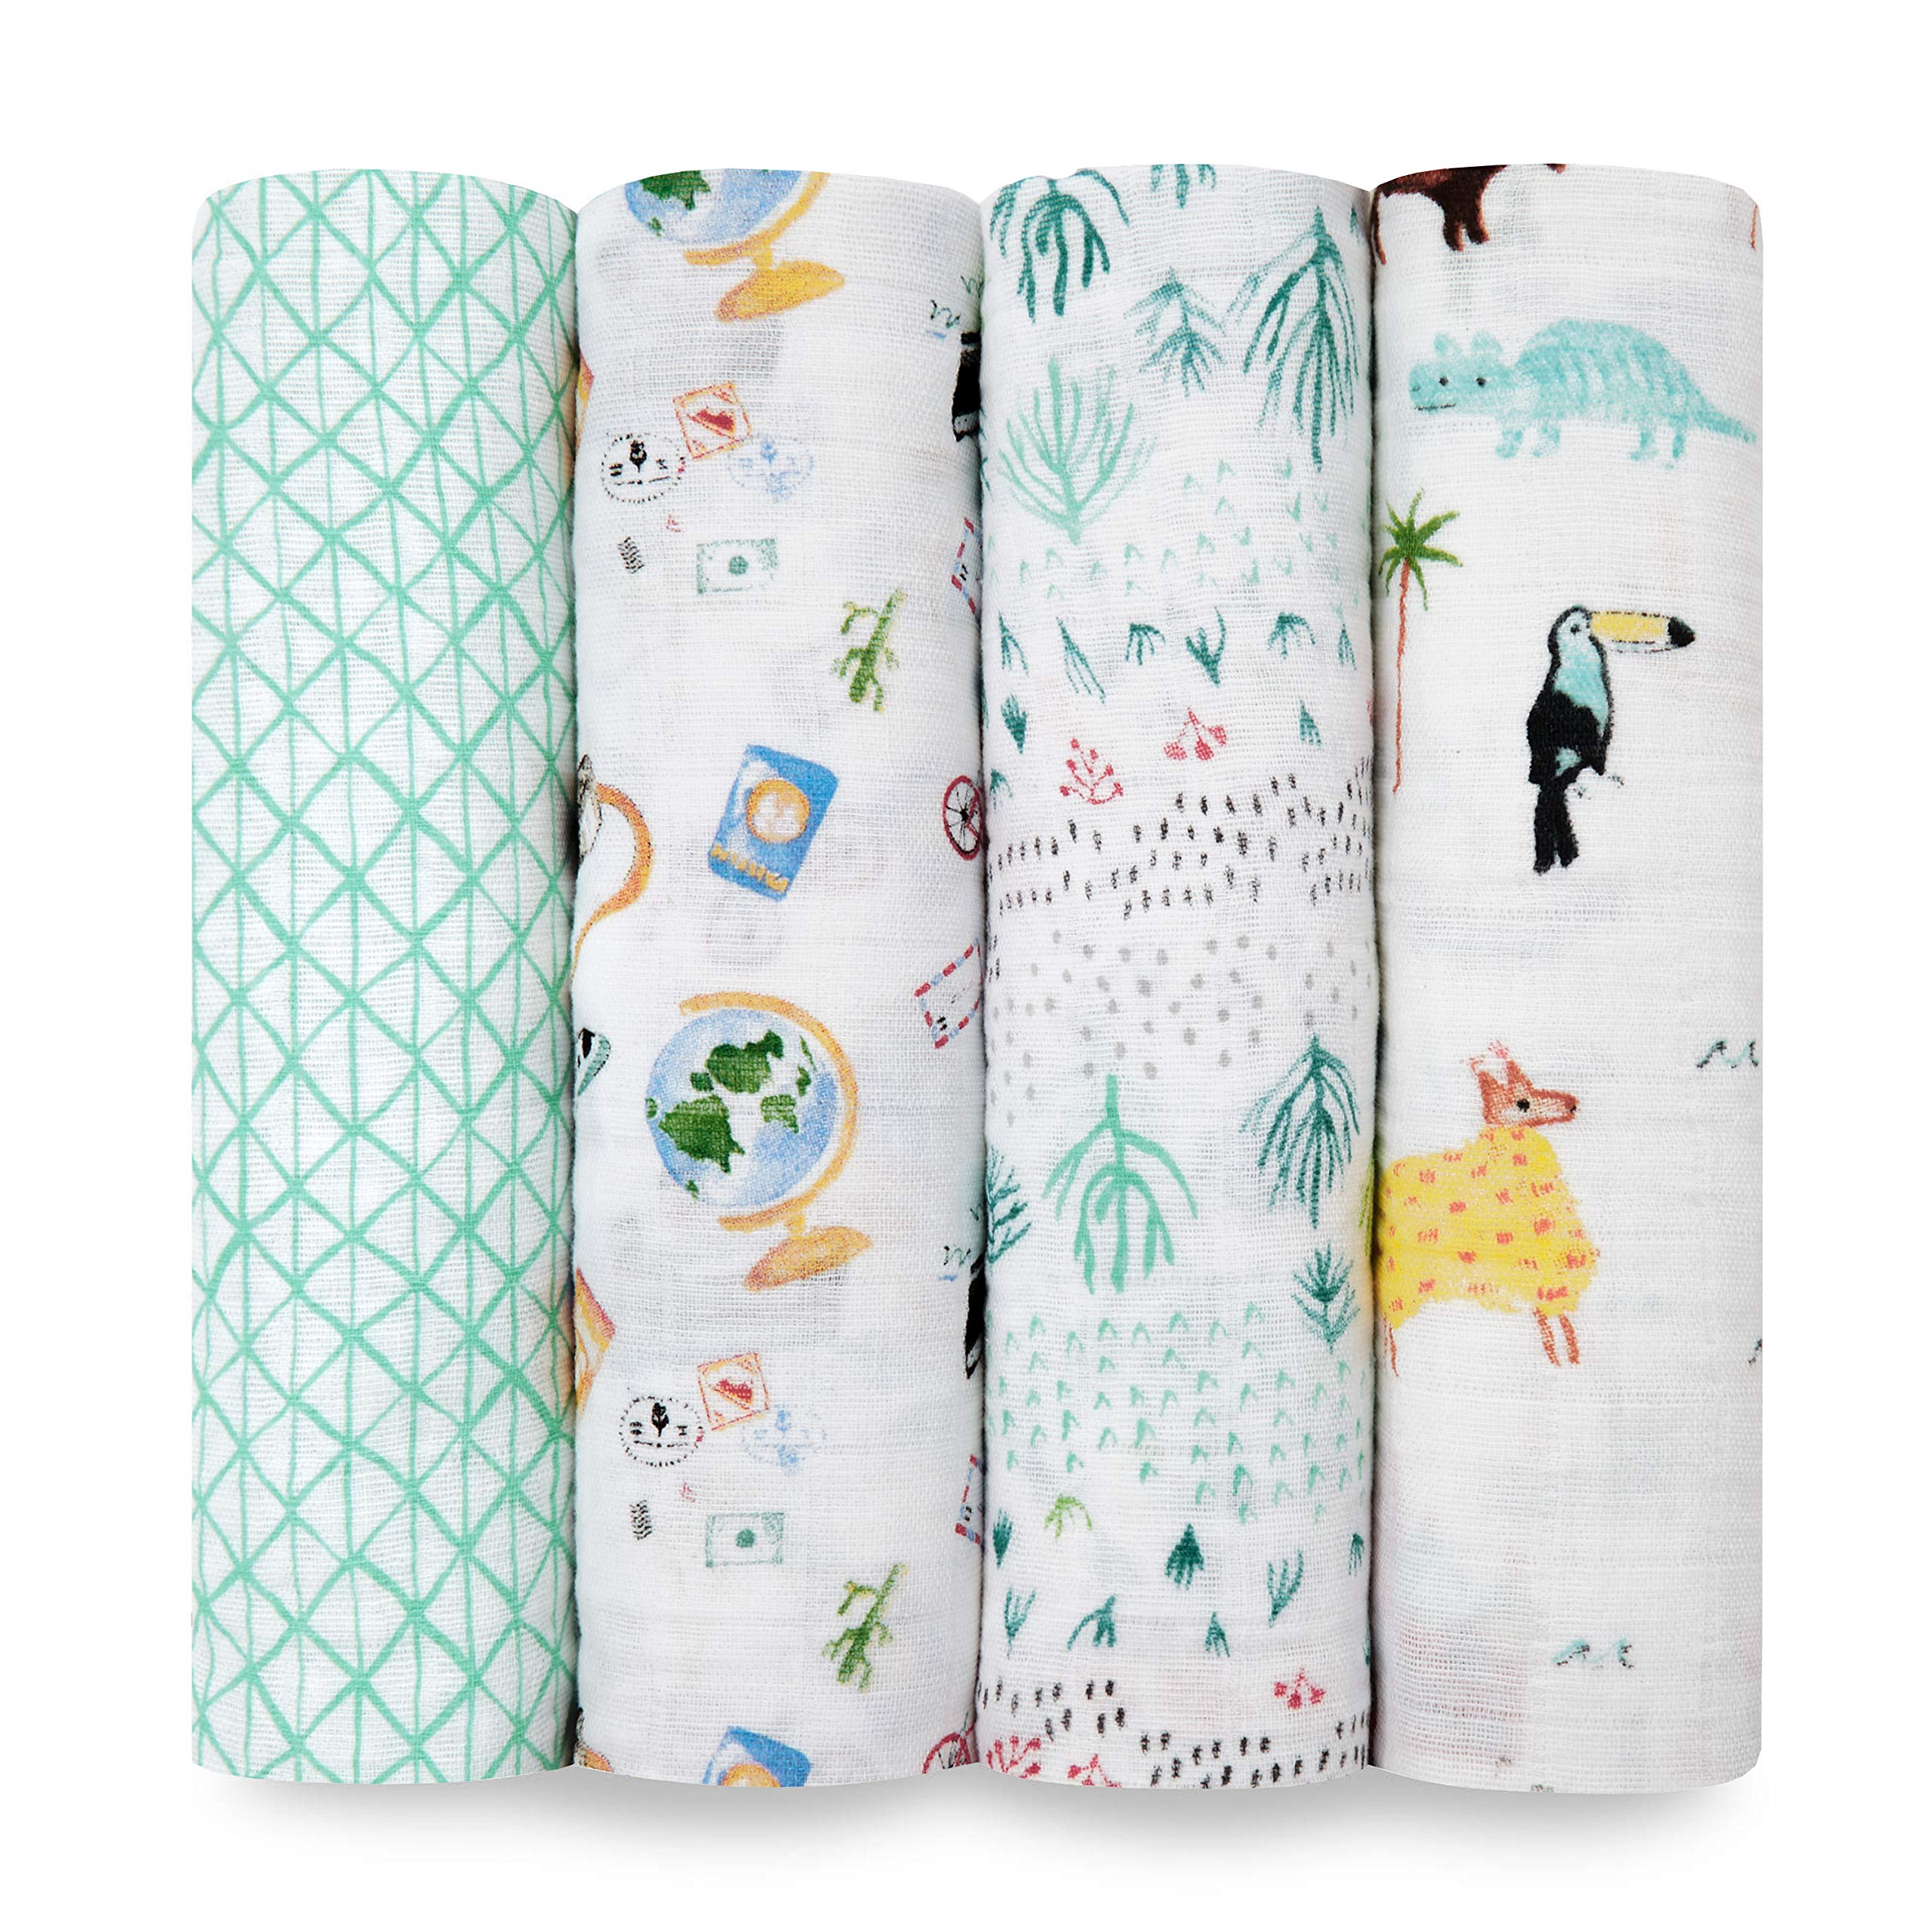 aden + anais Classic Swaddle Baby Blanket, 100% Cotton Muslin, Large 47 X 47 inch, 4 Pack, Around The World.